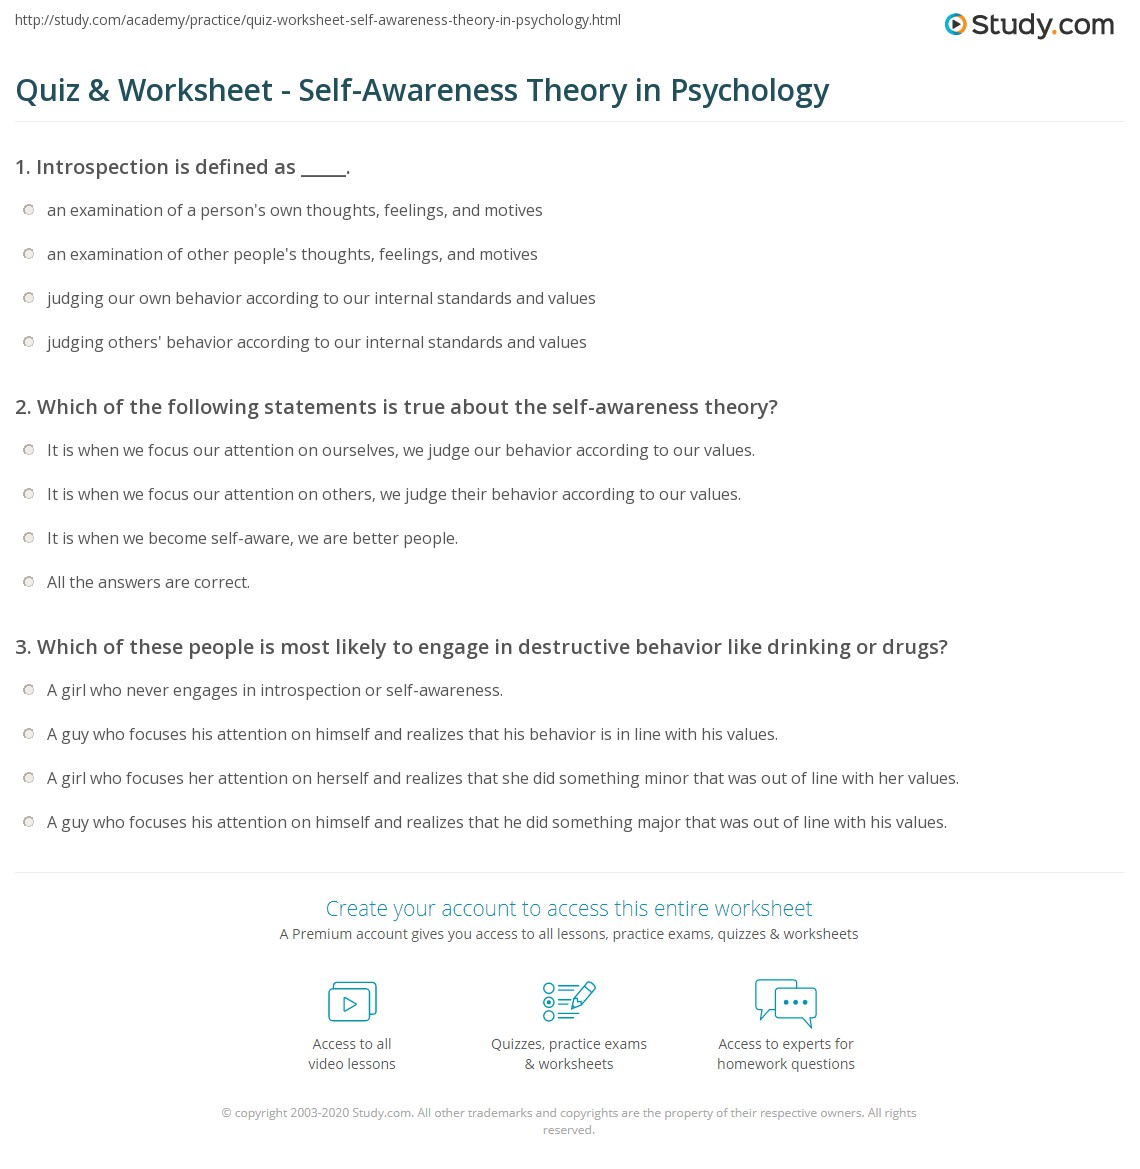 Quiz & Worksheet - Self-Awareness Theory in Psychology | Study.com